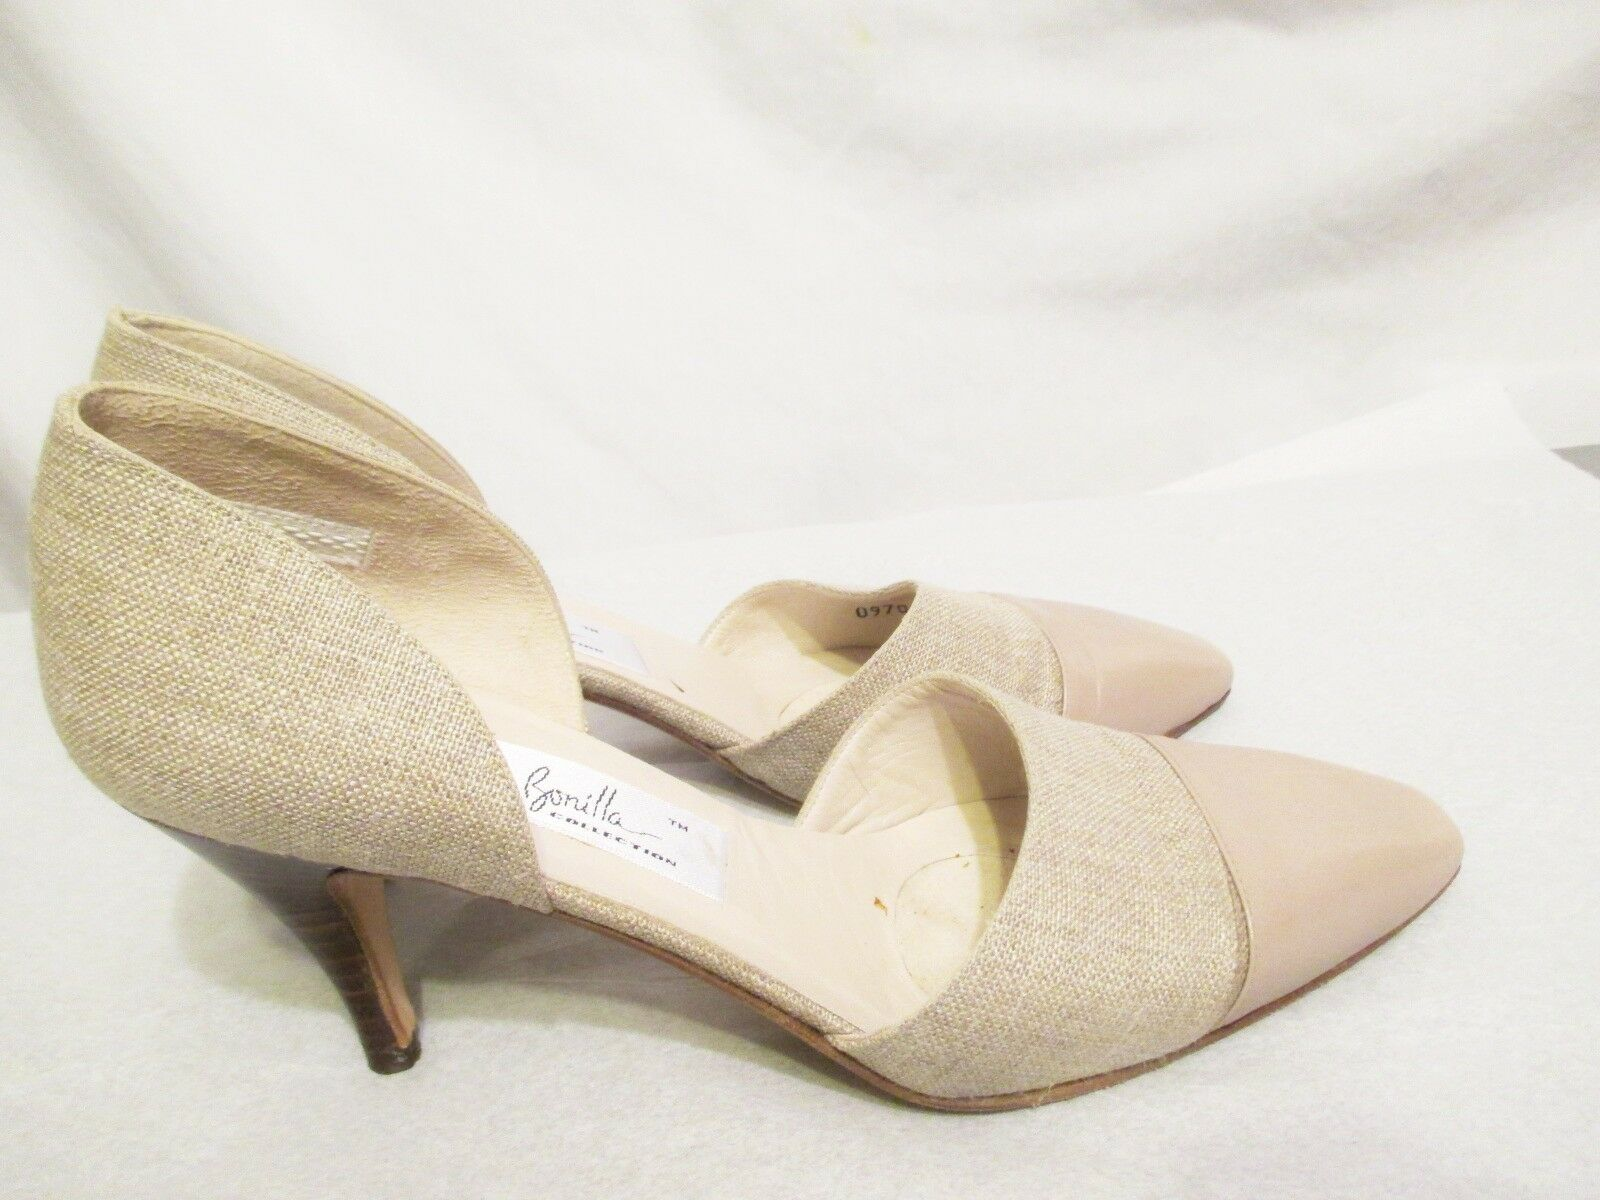 ANA BONILLA Collection Womens Pumps Heels shoes 6 1 2 M Leather Linen Made Spain